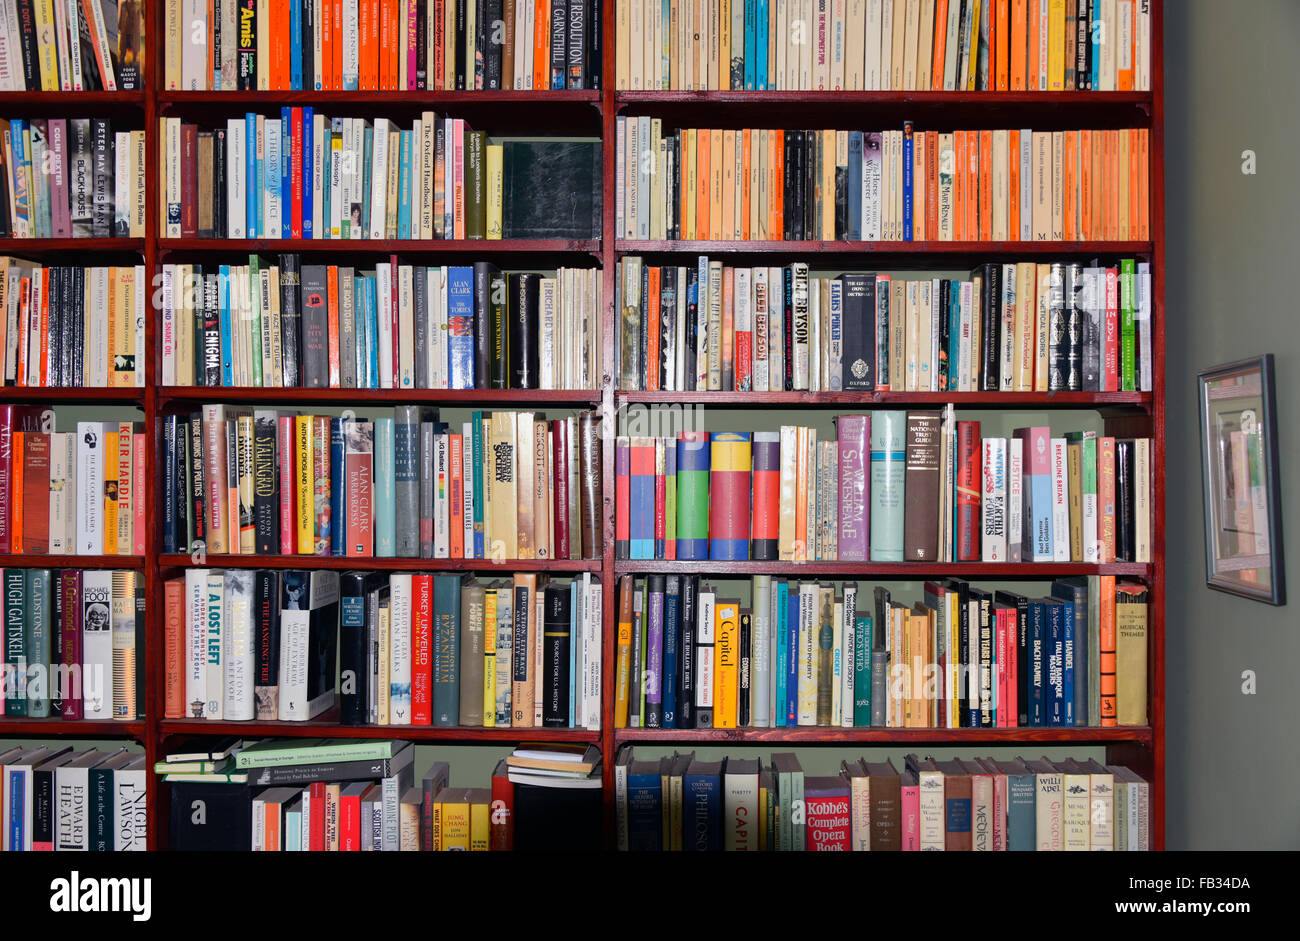 bookshelves-in-domestic-property-FB34DA.jpg